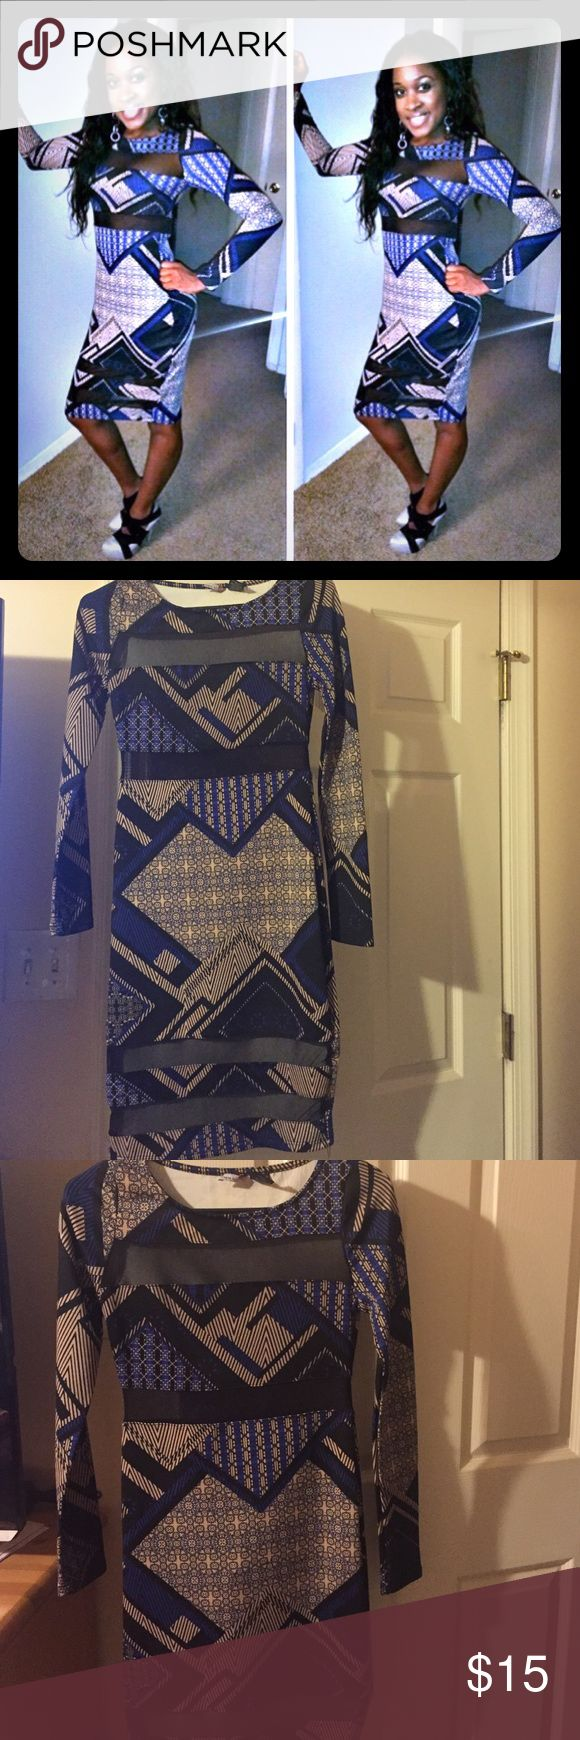 Long sleeved party dress Tan, blue and black Aztec type dress with mesh areas at the neck, under chest and across the bottom. Very comfortable and stretchy material. Fire Los Angeles Dresses Long Sleeve